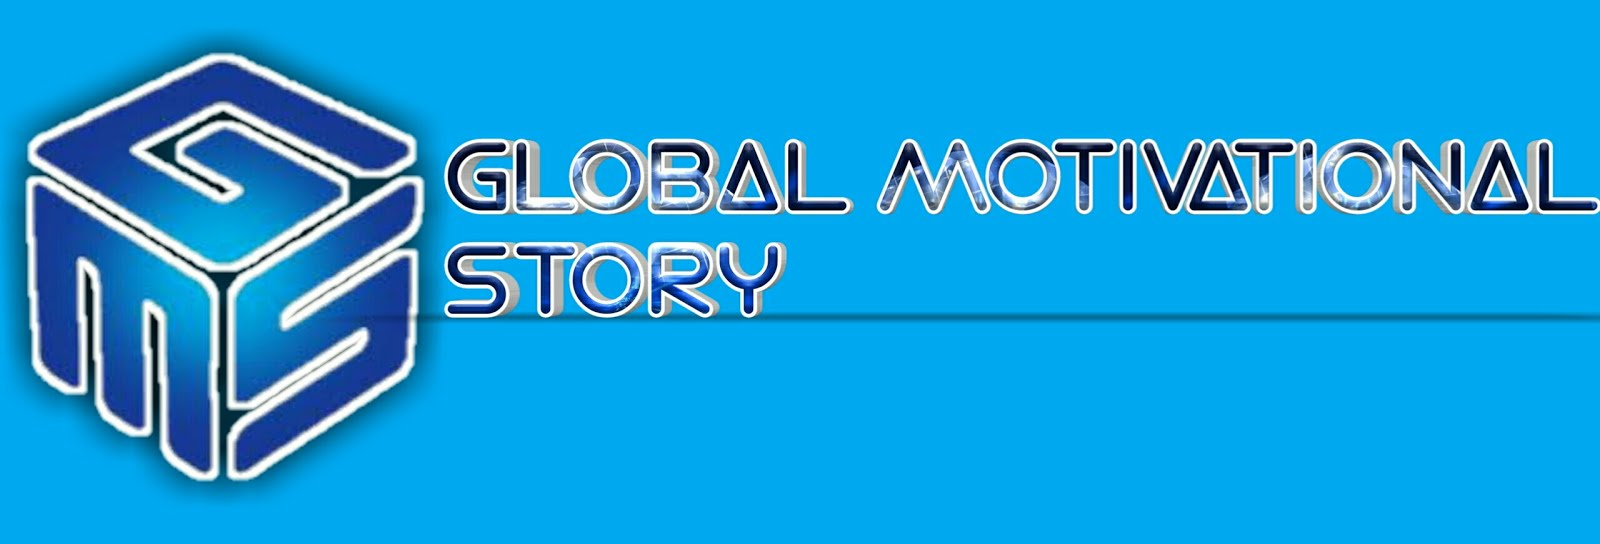 Welcome to Global Motivational Story